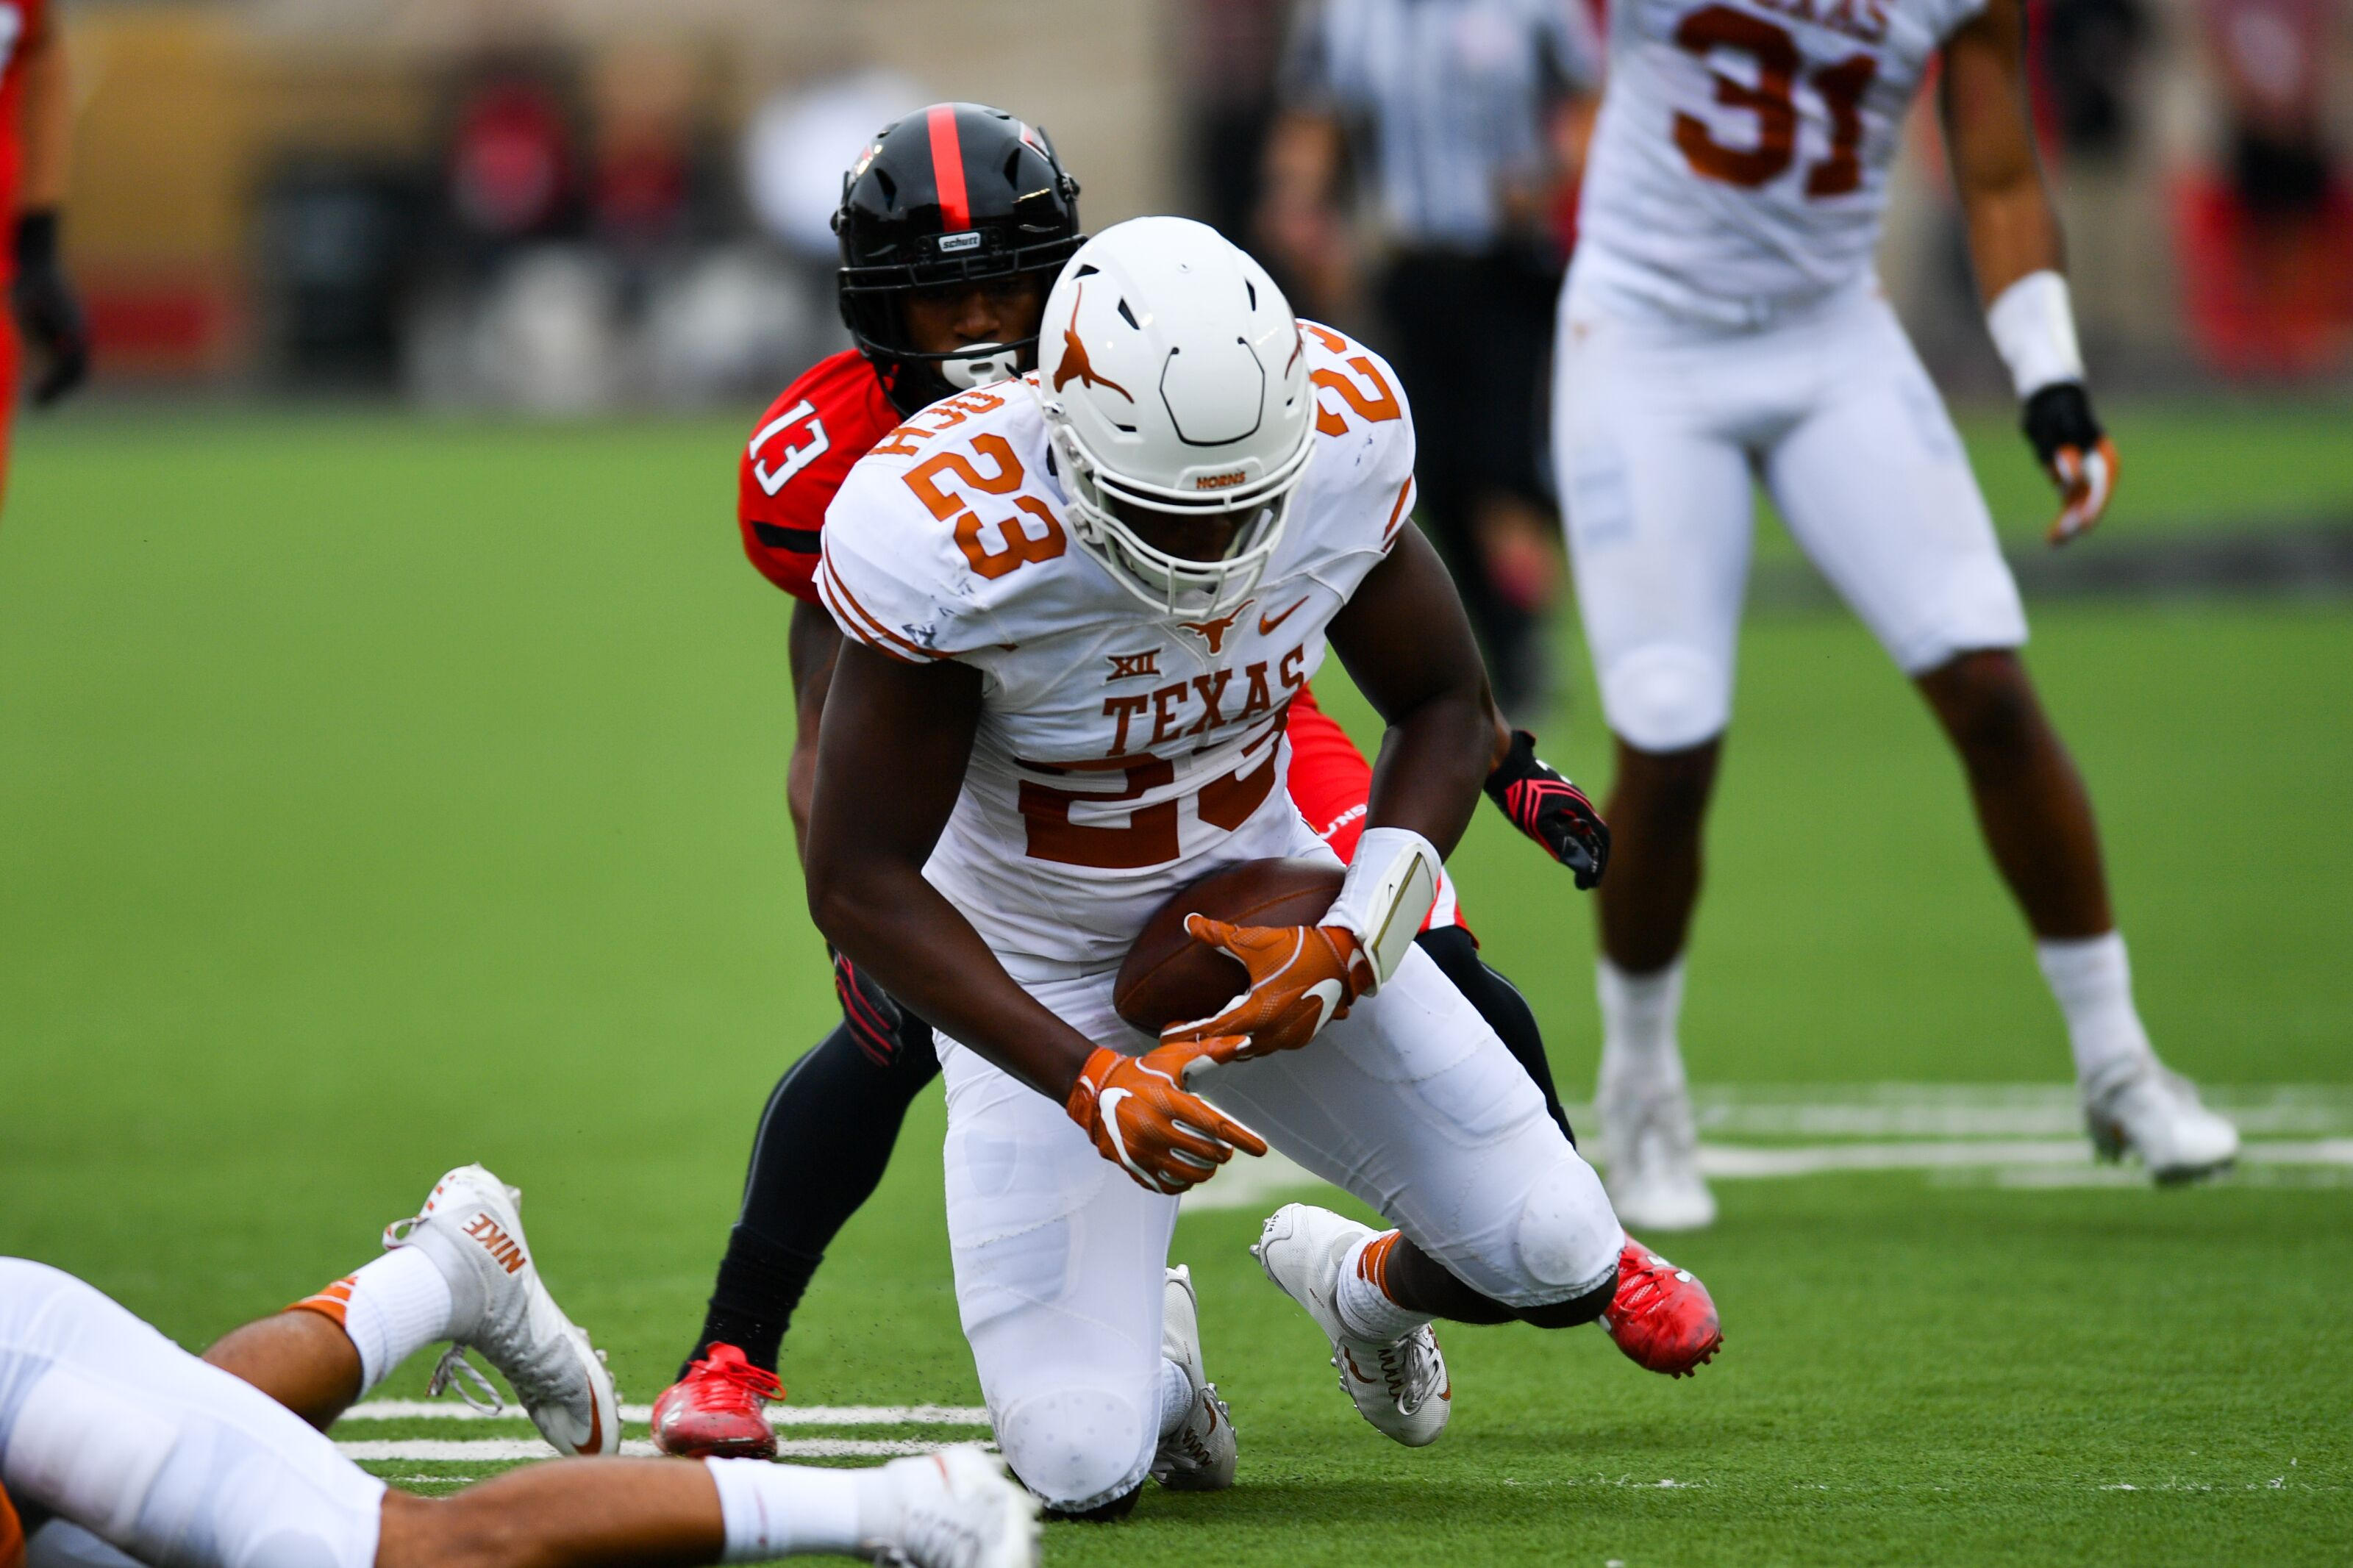 Buy University of Texas football tickets and get news highlights rosters schedules stats and scores